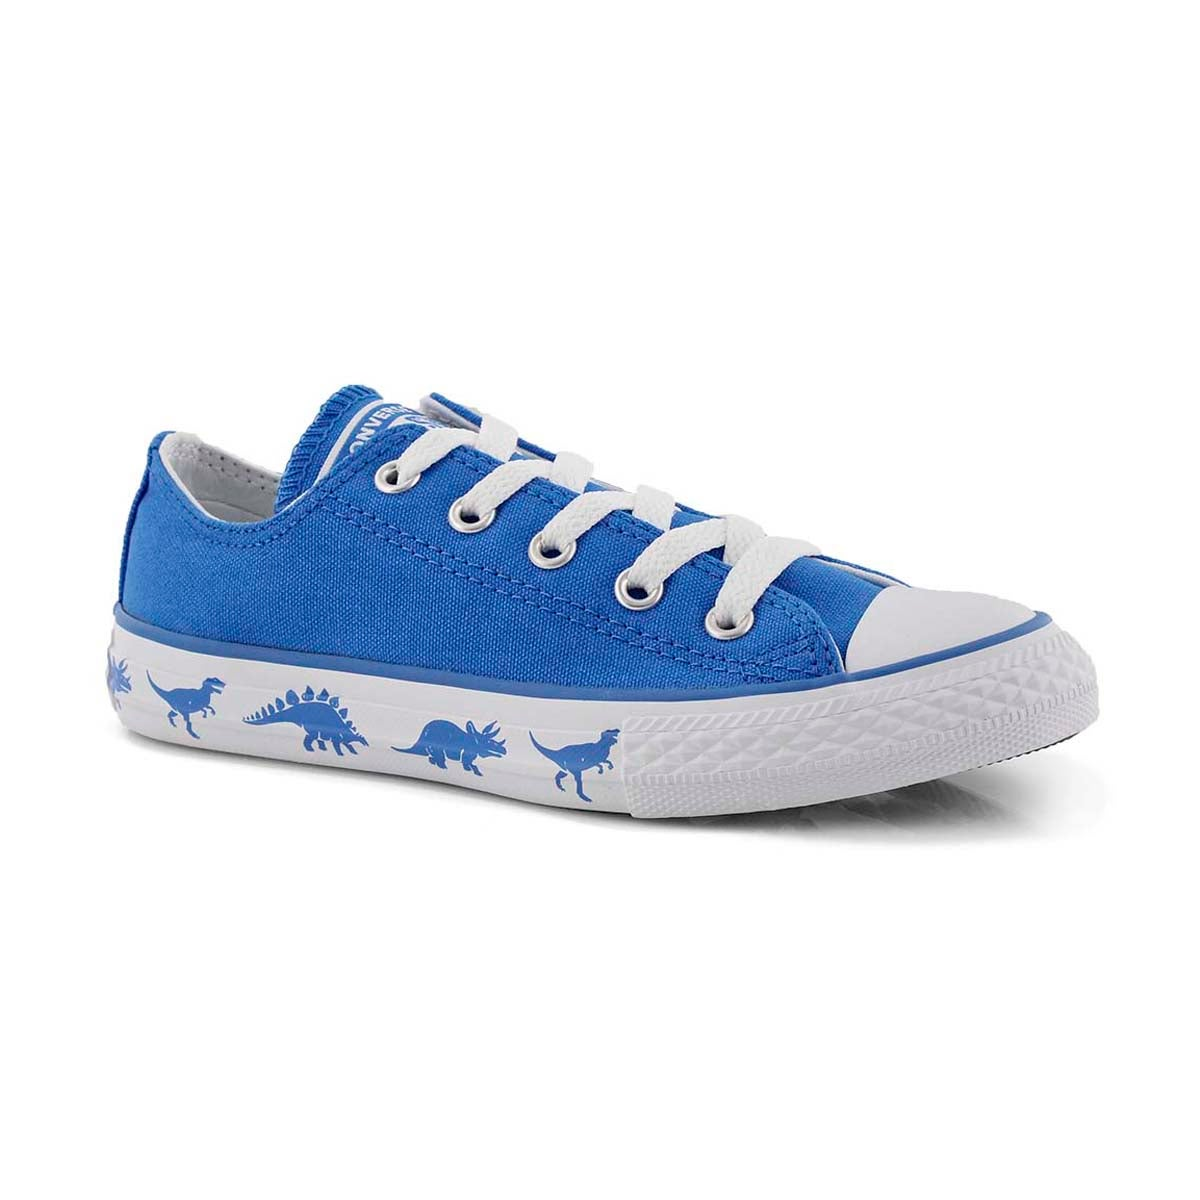 Bys CTAS Dinoverse blue/wht sneaker